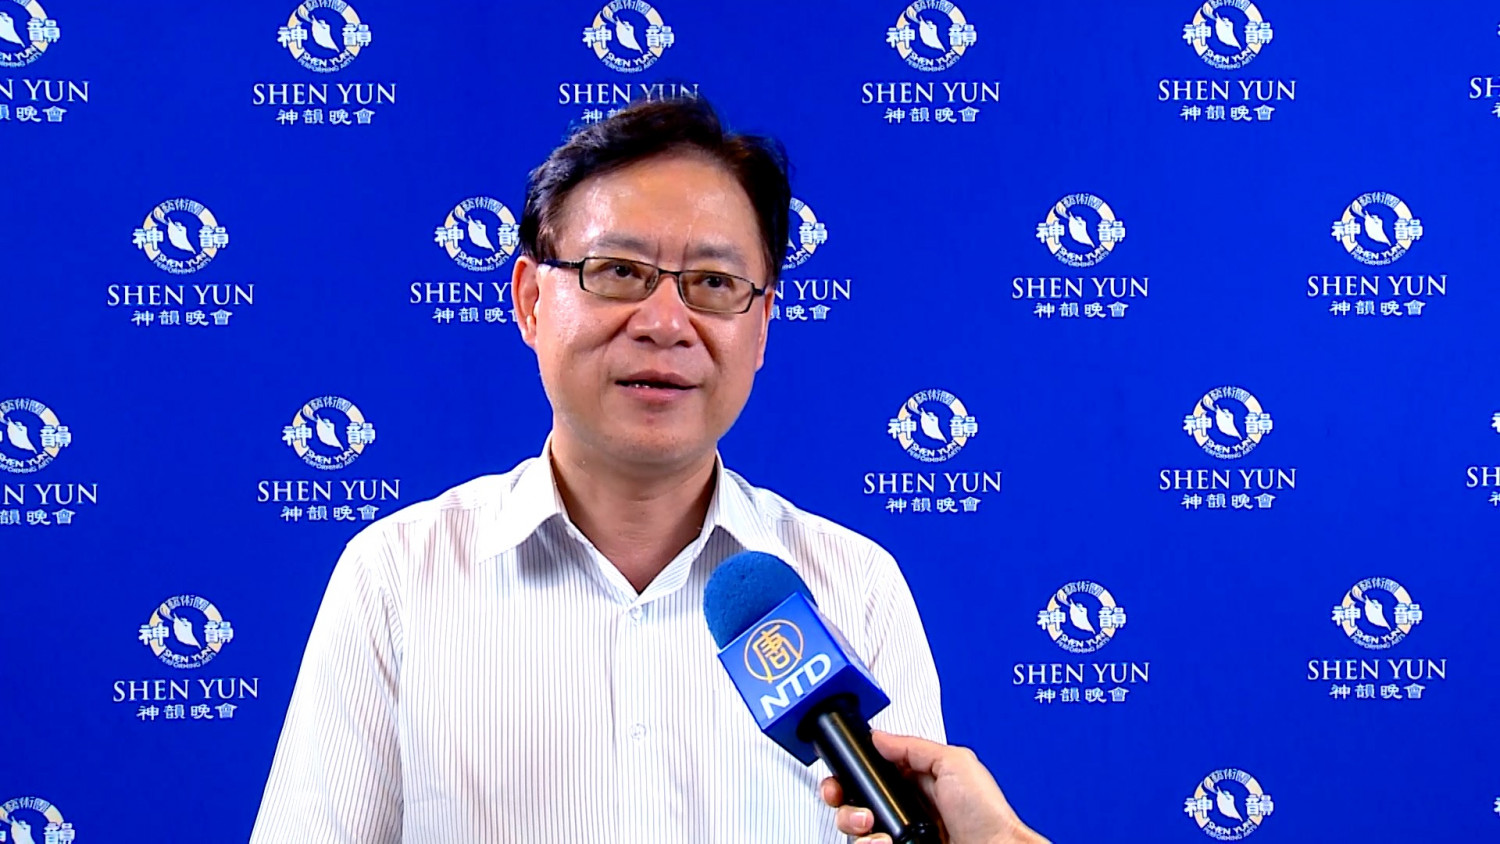 Shen Yun Symphony Orchestra 'Shows China's Beautiful Culture,' Taiwanese Professor Says